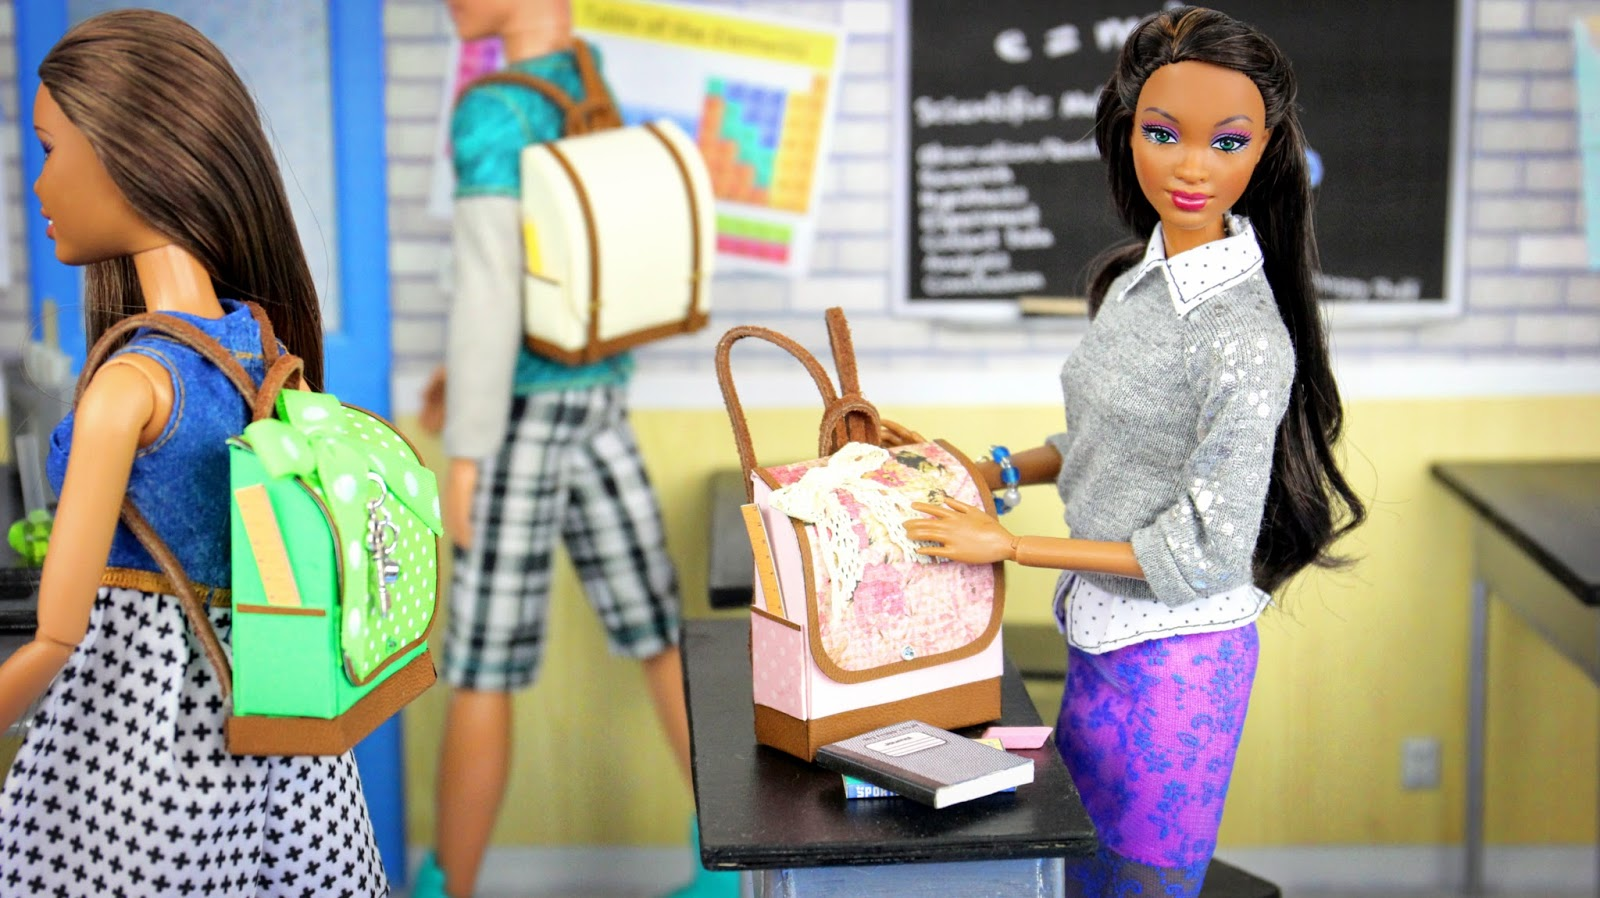 barbie doll essay college More essay examples on effect rubric the chances of a woman naturally having barbie's proportions is extremely unlikely barbie and many other fashion dolls do not represent realistic bodies, their perfect image can be incredibly damaging for young girls self esteem.